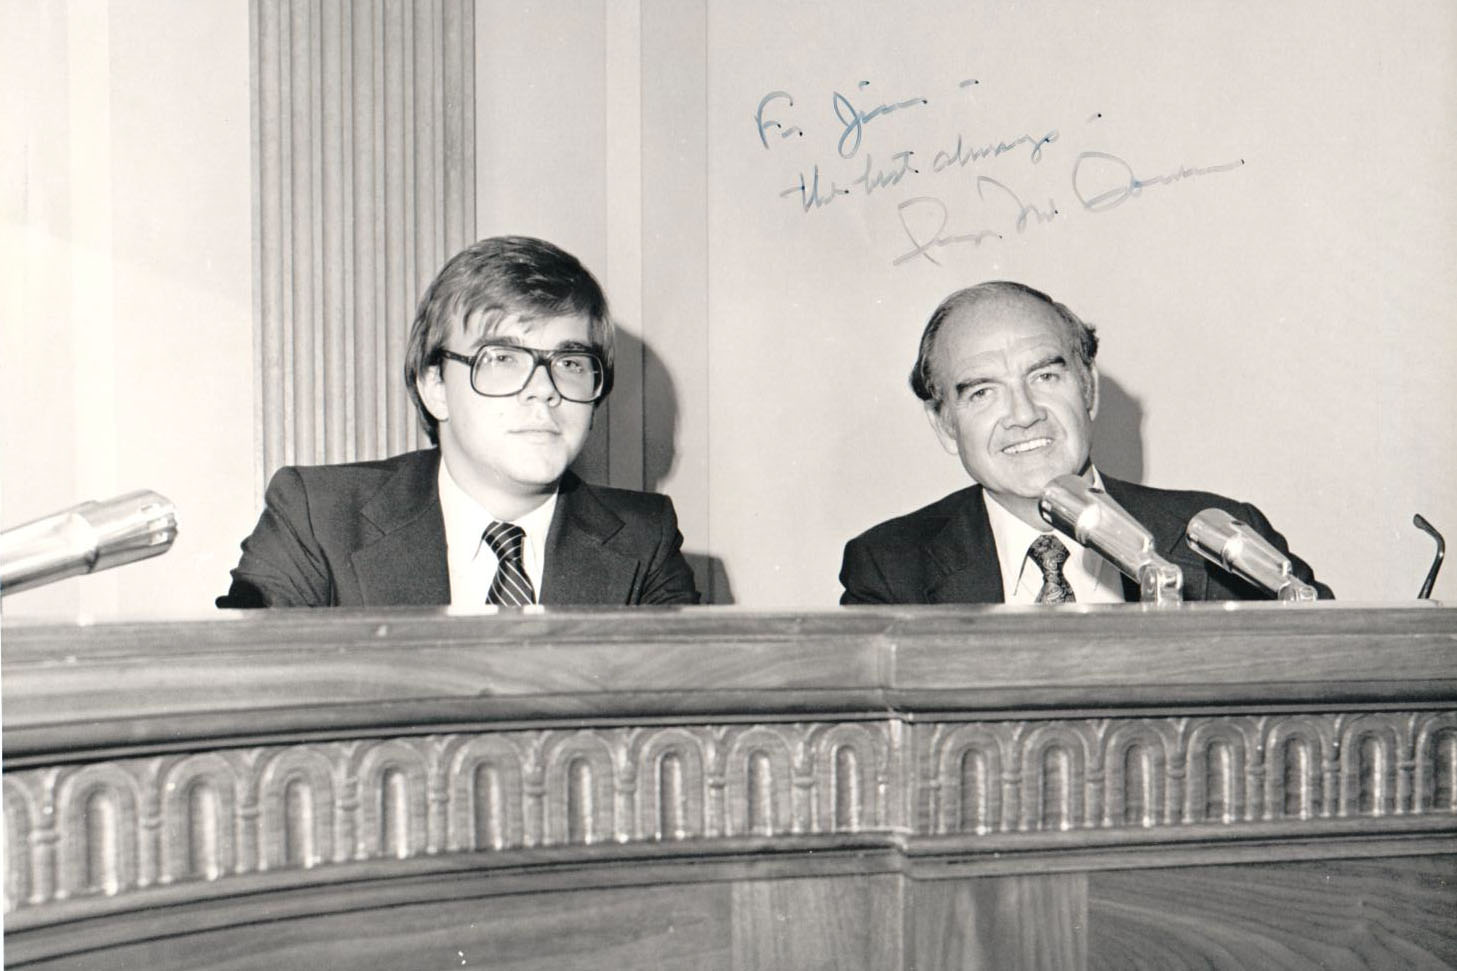 Rep. Jim McGovern (left) is pictured with his boss Sen. George McGovern soon after joining his office in [WHAT YEAR]. (Courtesy of Jim McGovern)